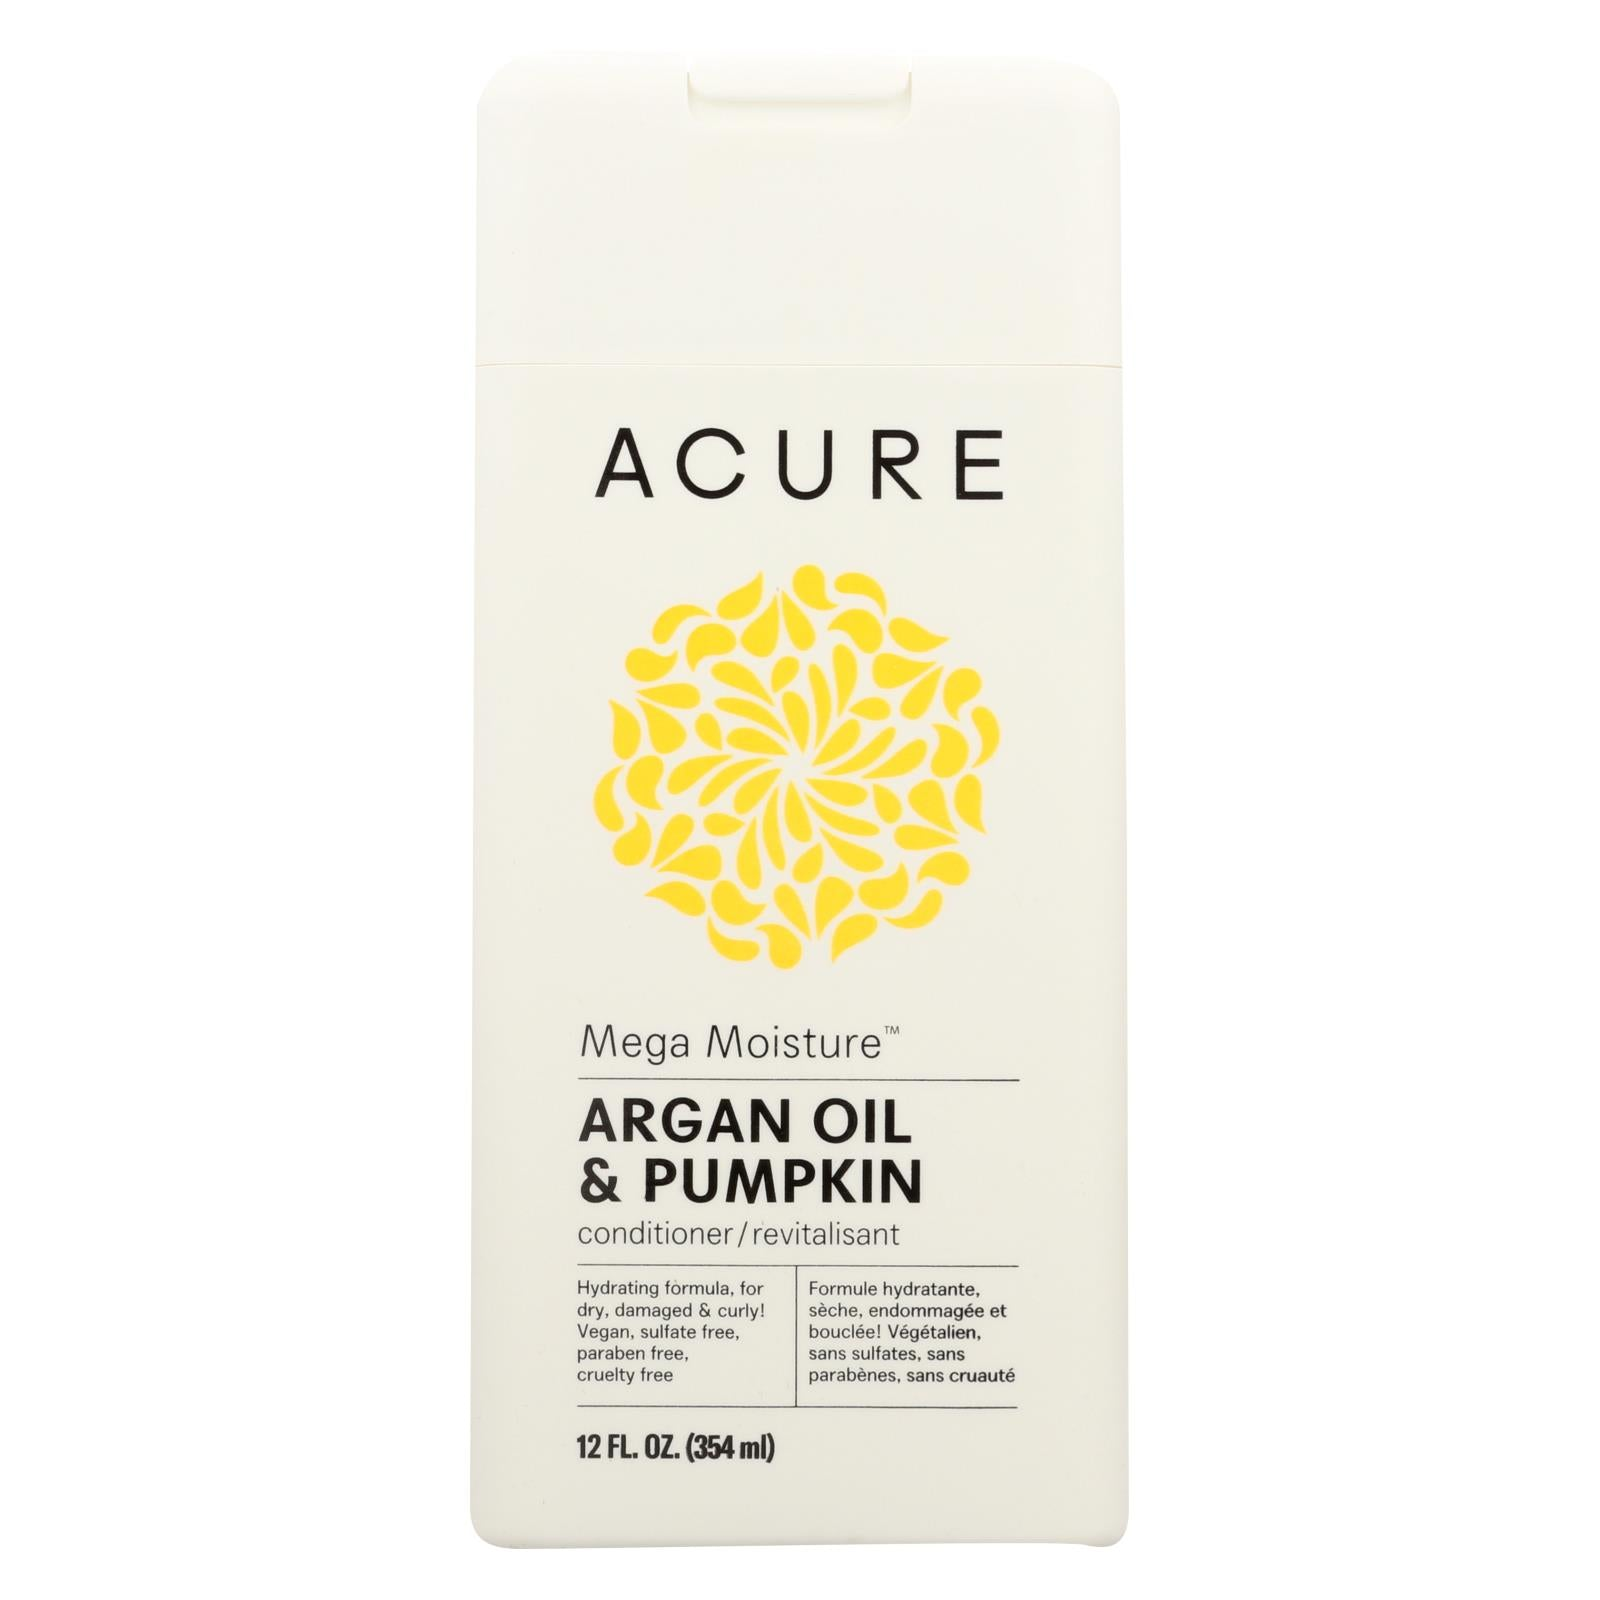 Buy Acure Conditioner - Mega Moisture - 12 fl oz - Conditioner from Veroeco.com